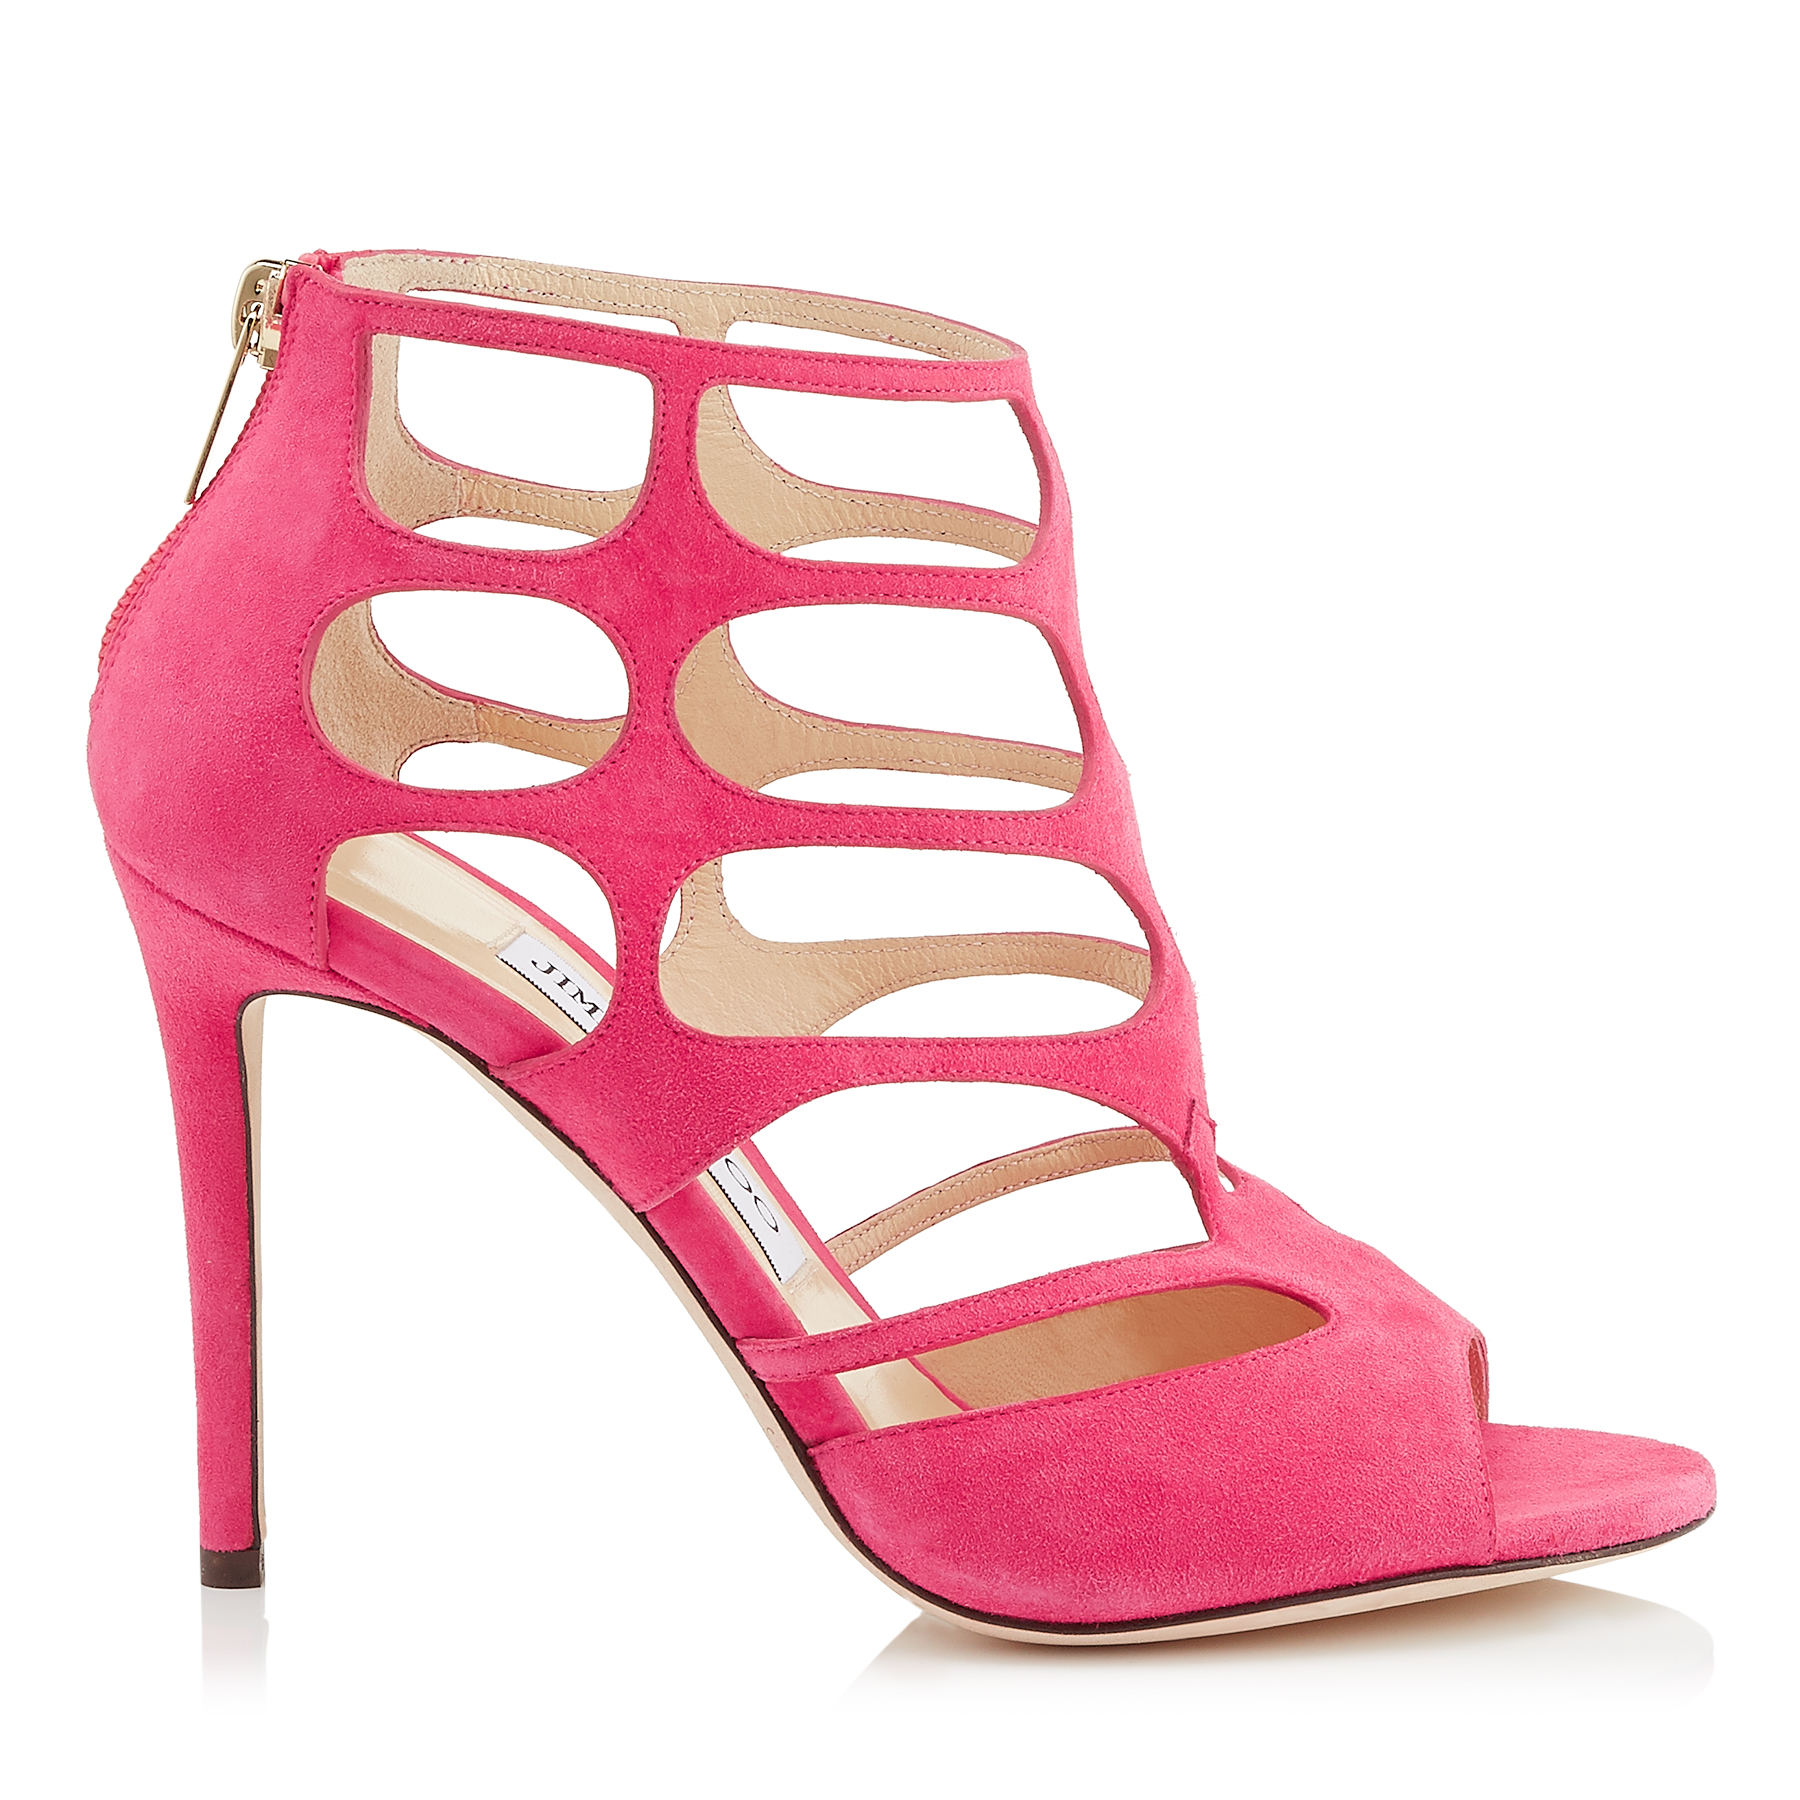 REN 100 Pink Suede Sandals by Jimmy Choo